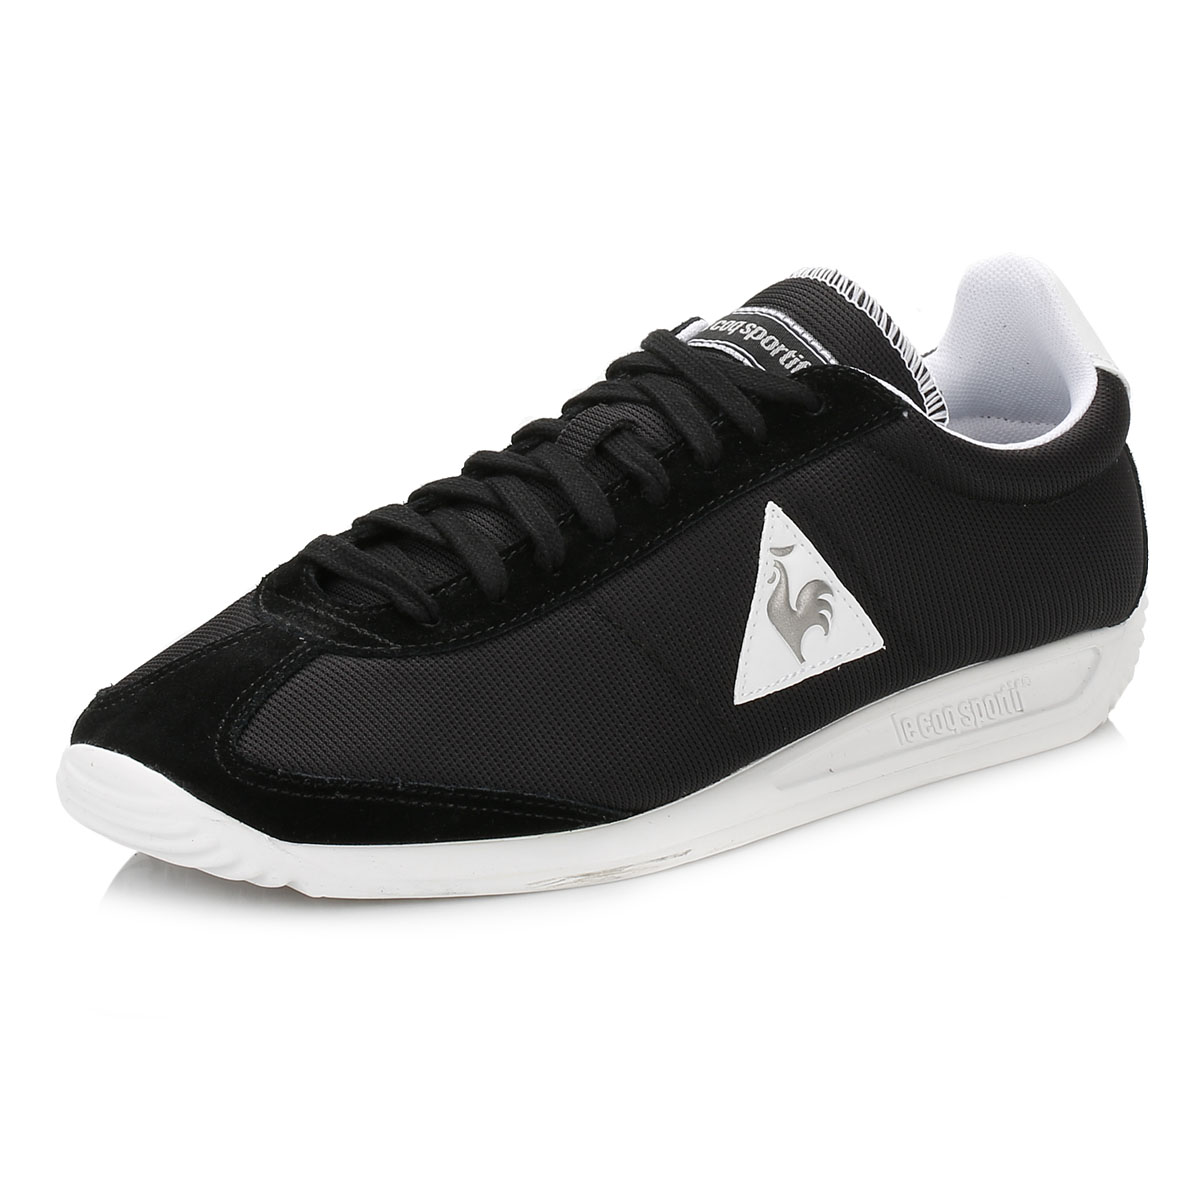 Le Coq Sportif Basketball Shoes For Sale